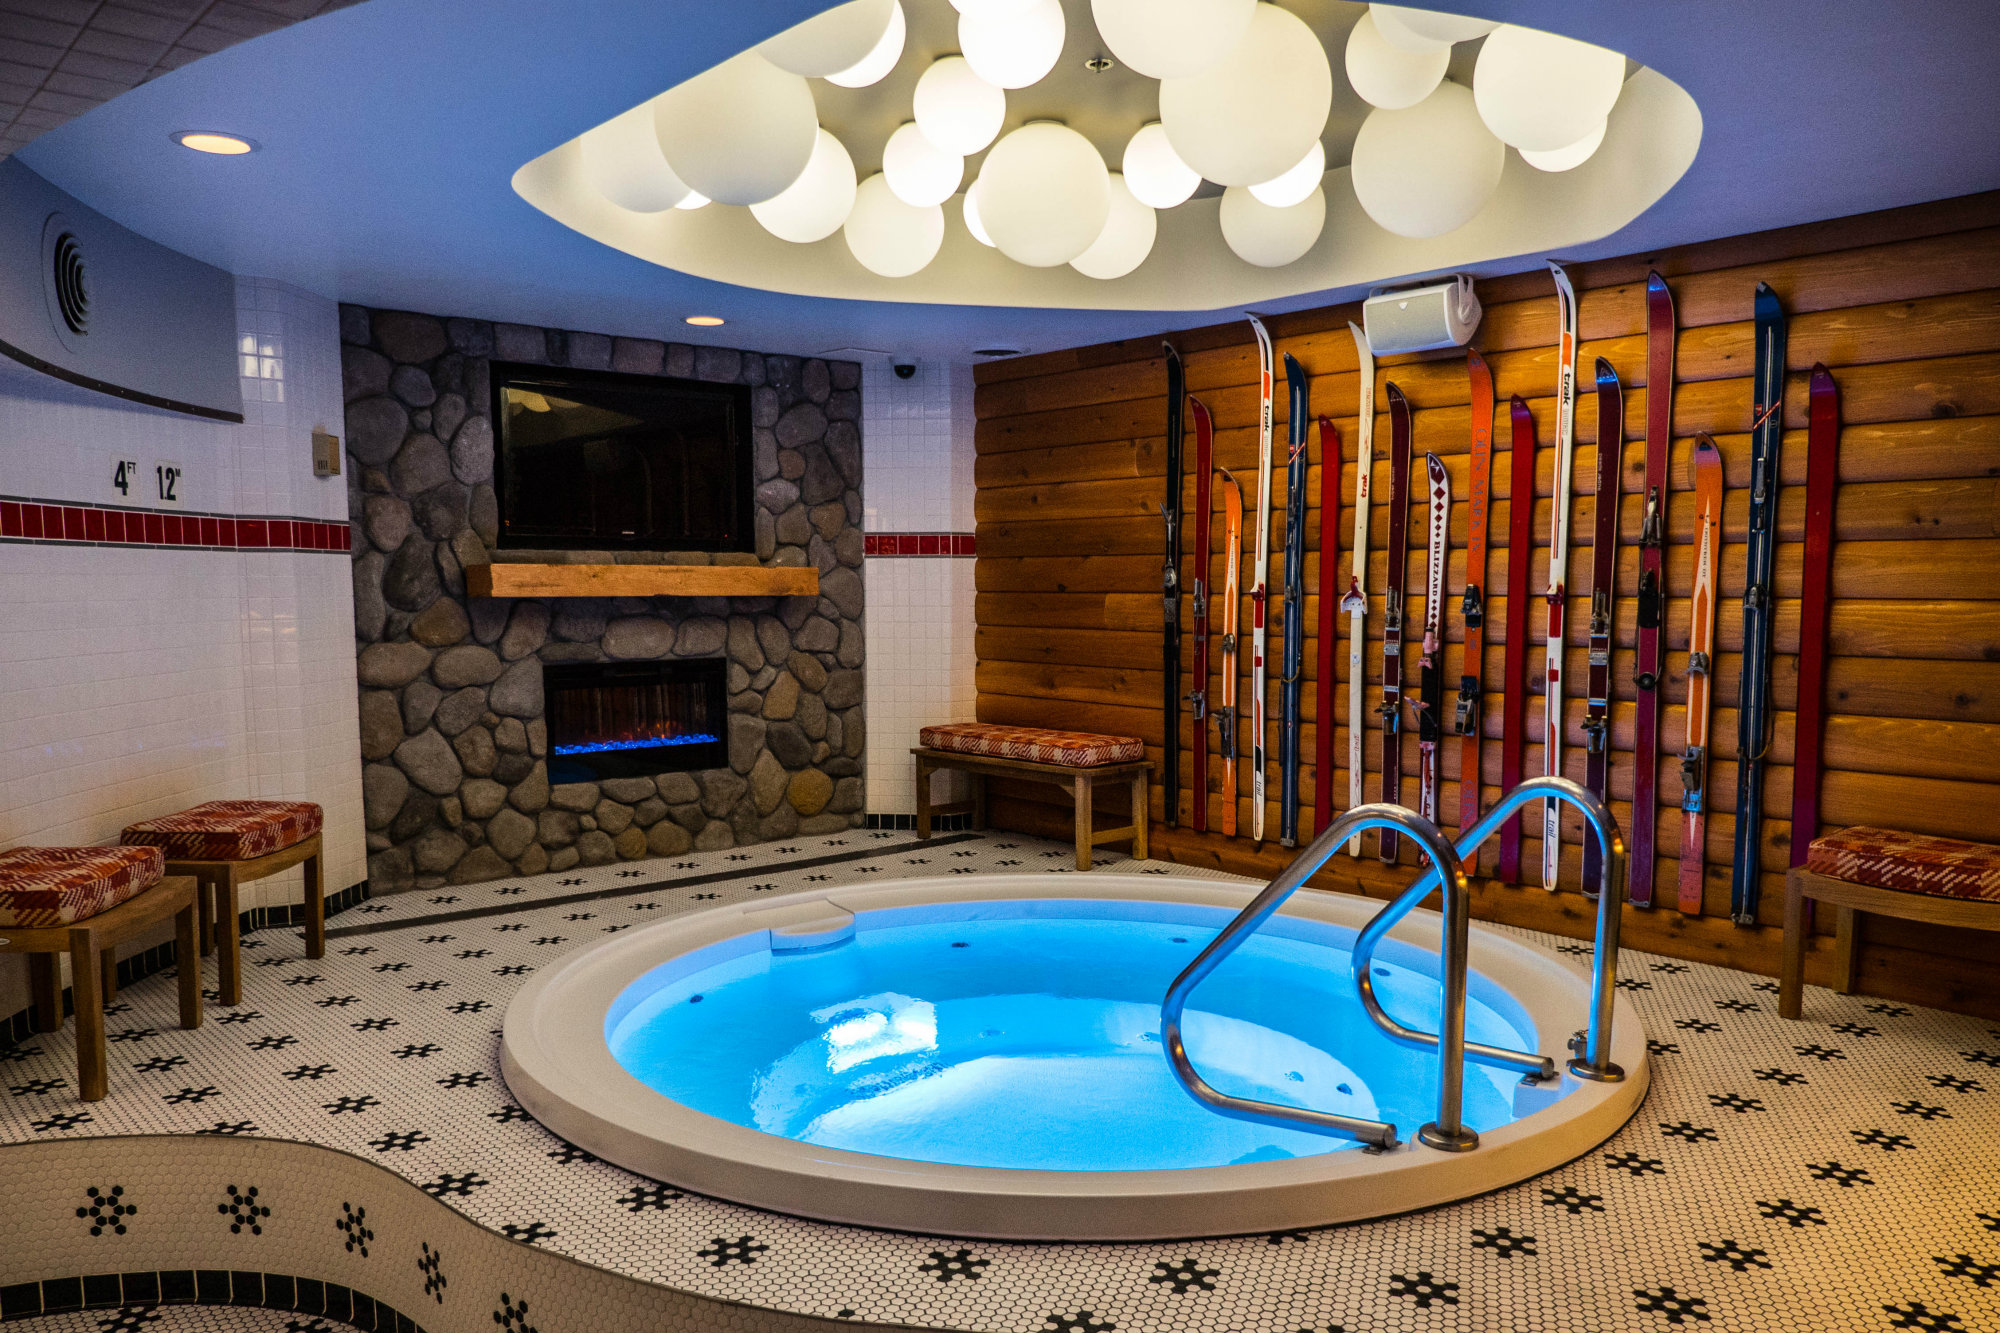 Zen Jacuzzi Pool With Exclusive Lounge A Chicago Hotel Opens Hot Tub Themed Bar Pool And Spa News